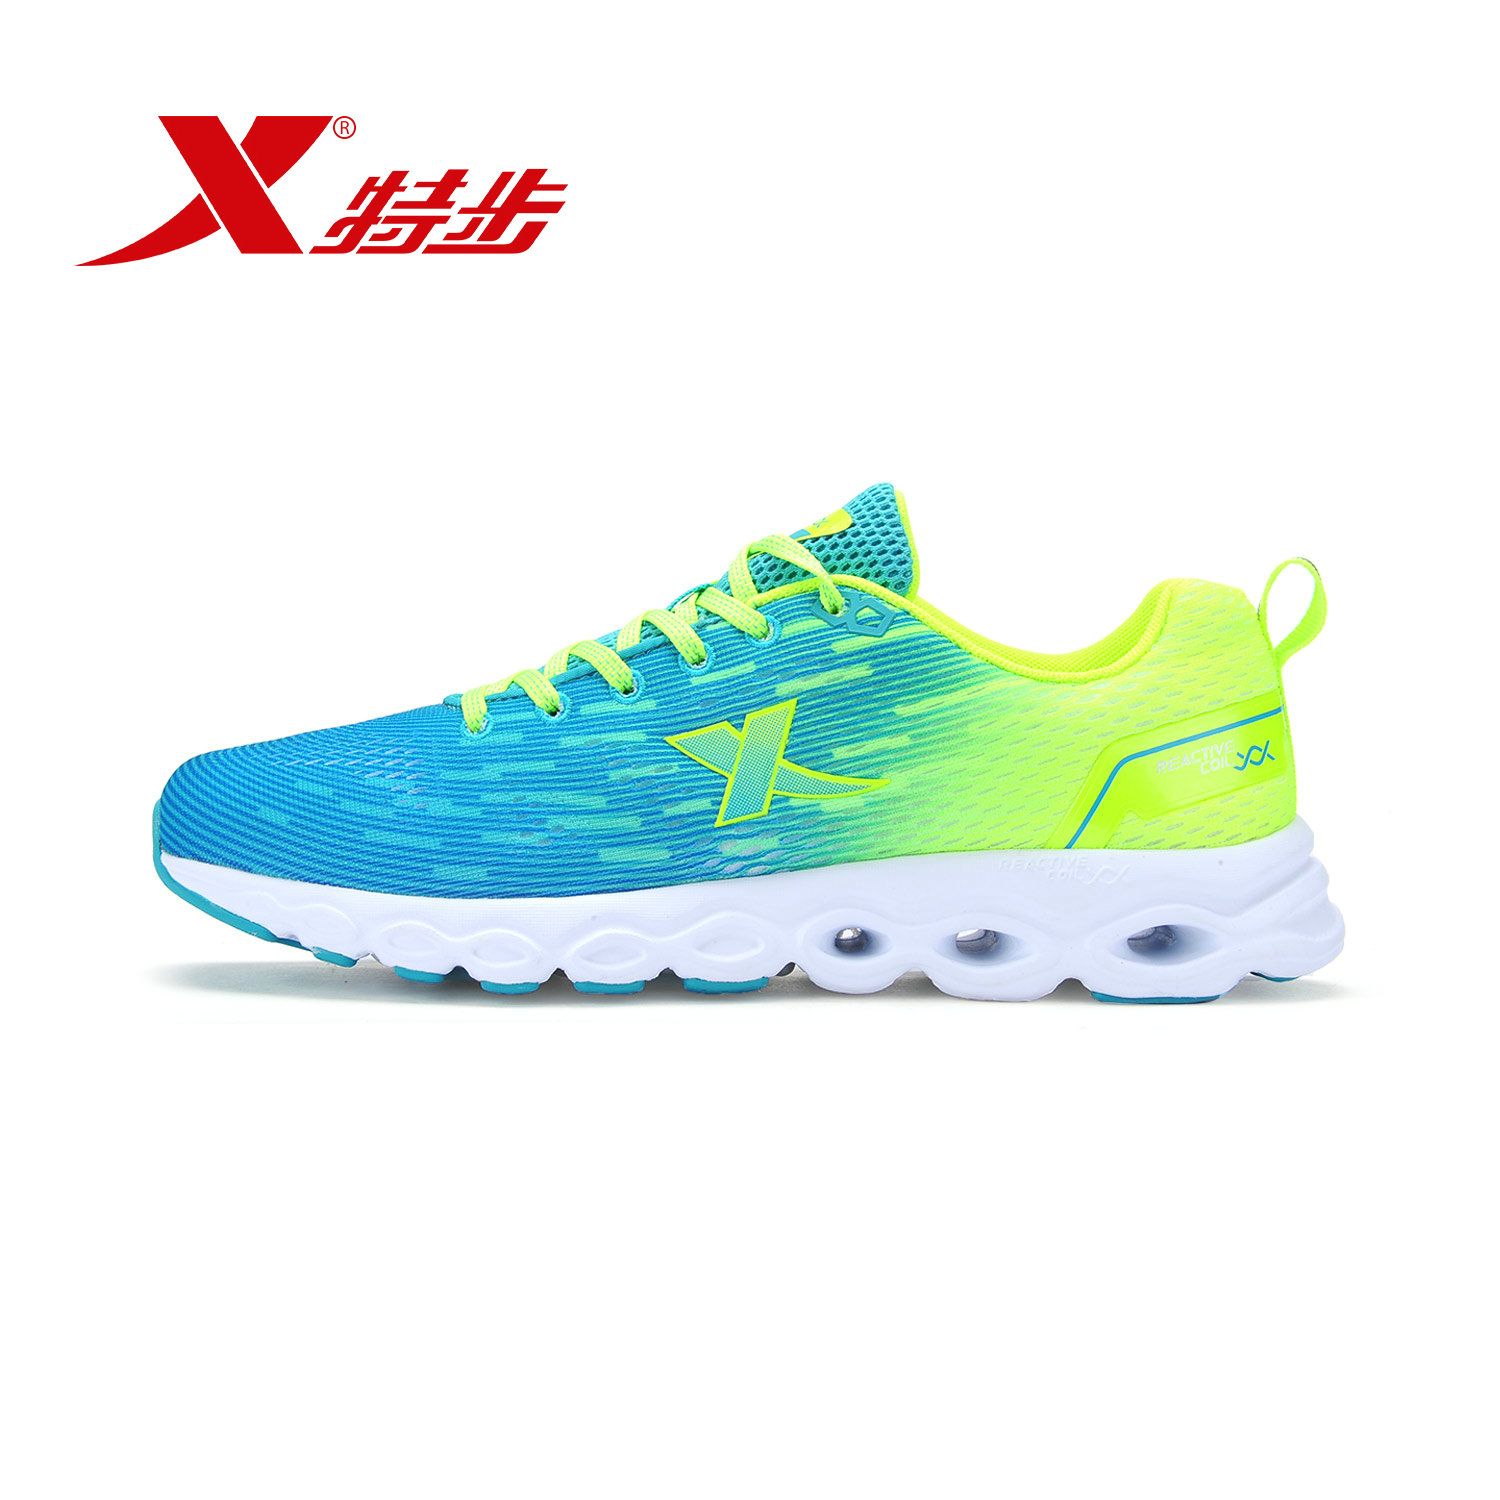 Xtep running shoes men's sports shoes 2016 summer new running shoes lightweight casual shoes 984219116076